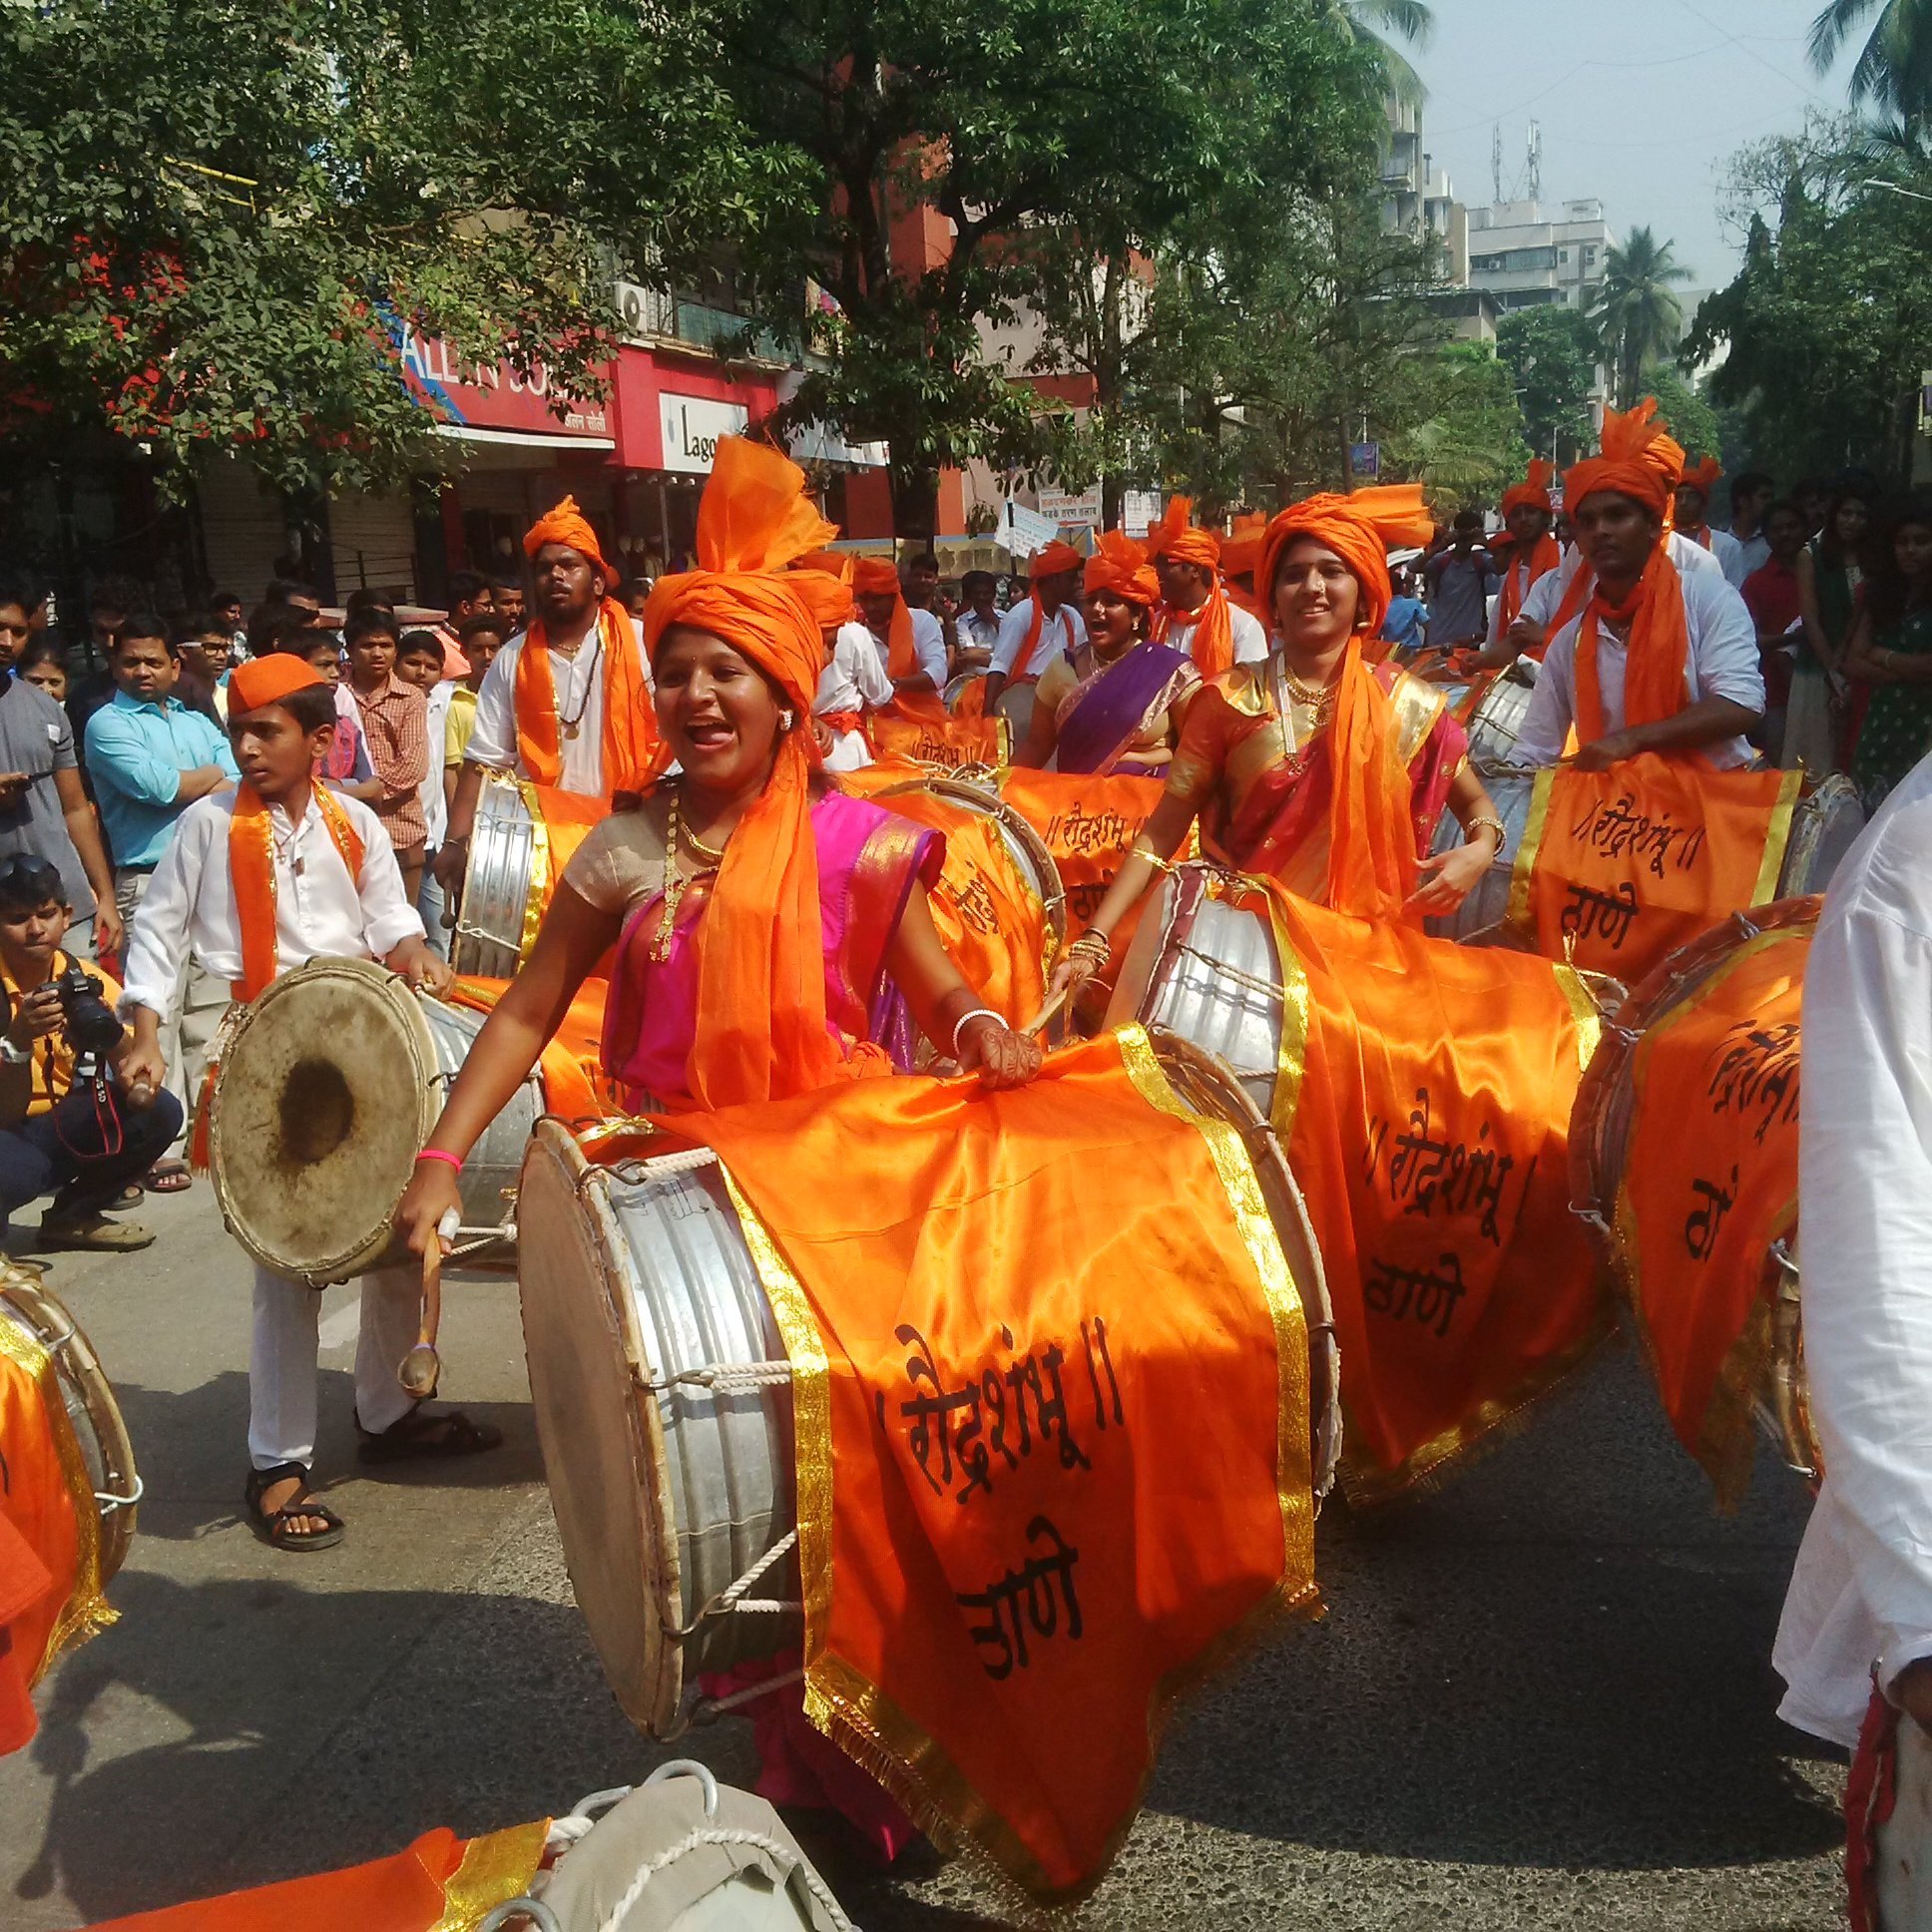 The Shobha Yatra in Gudi Padwa Celebrations in India